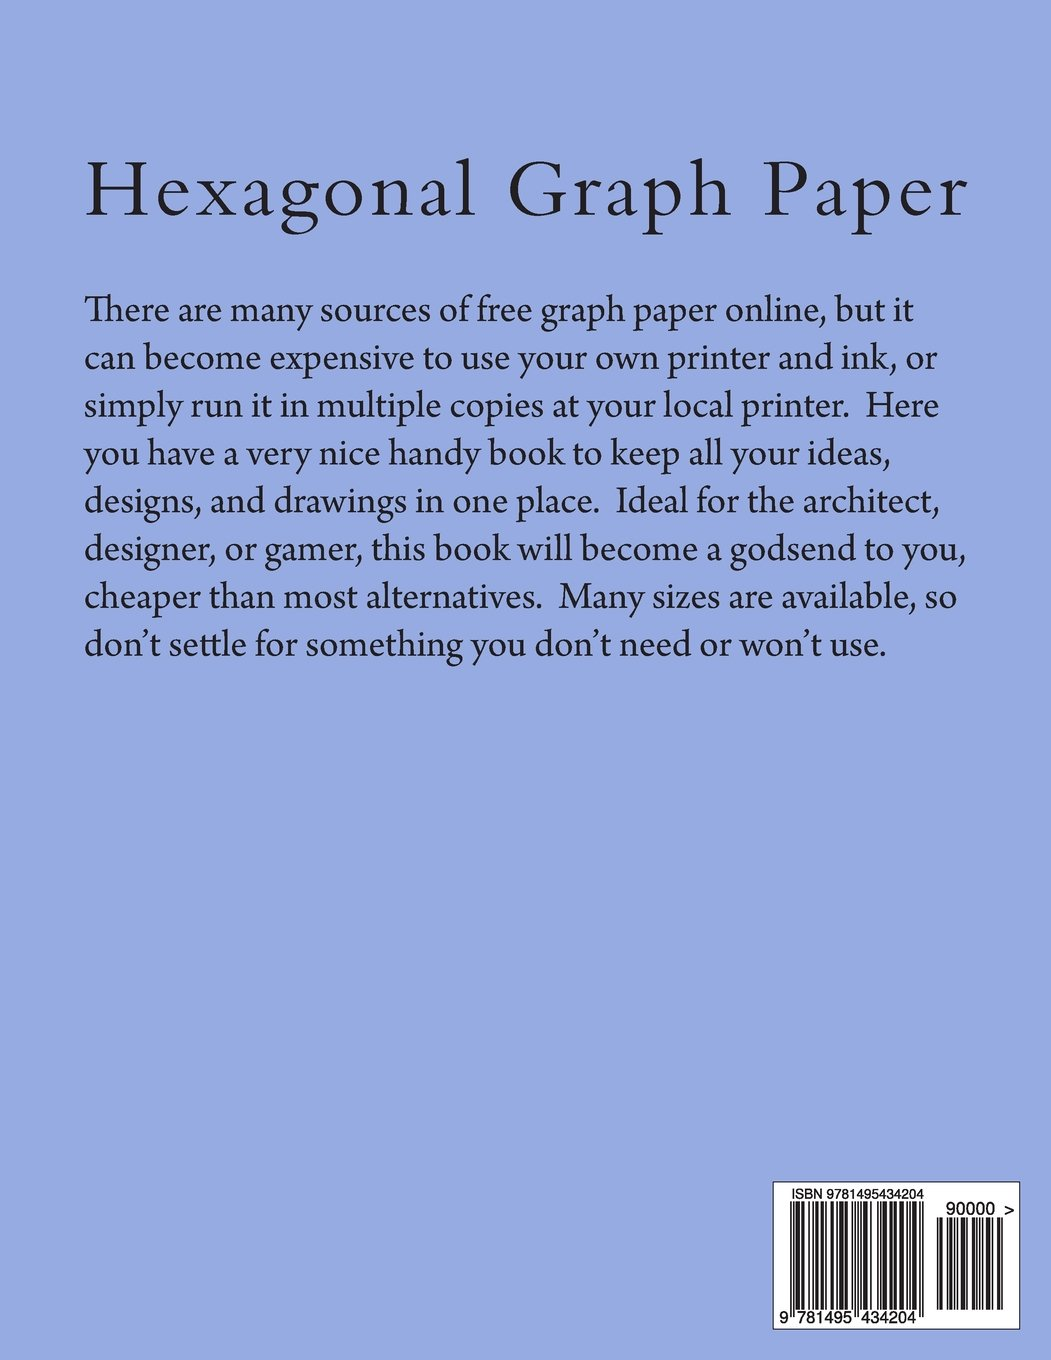 Hexagonal Graph Paper: 1 inch Hexes, 100 Sheets: Paul M Fleury ...